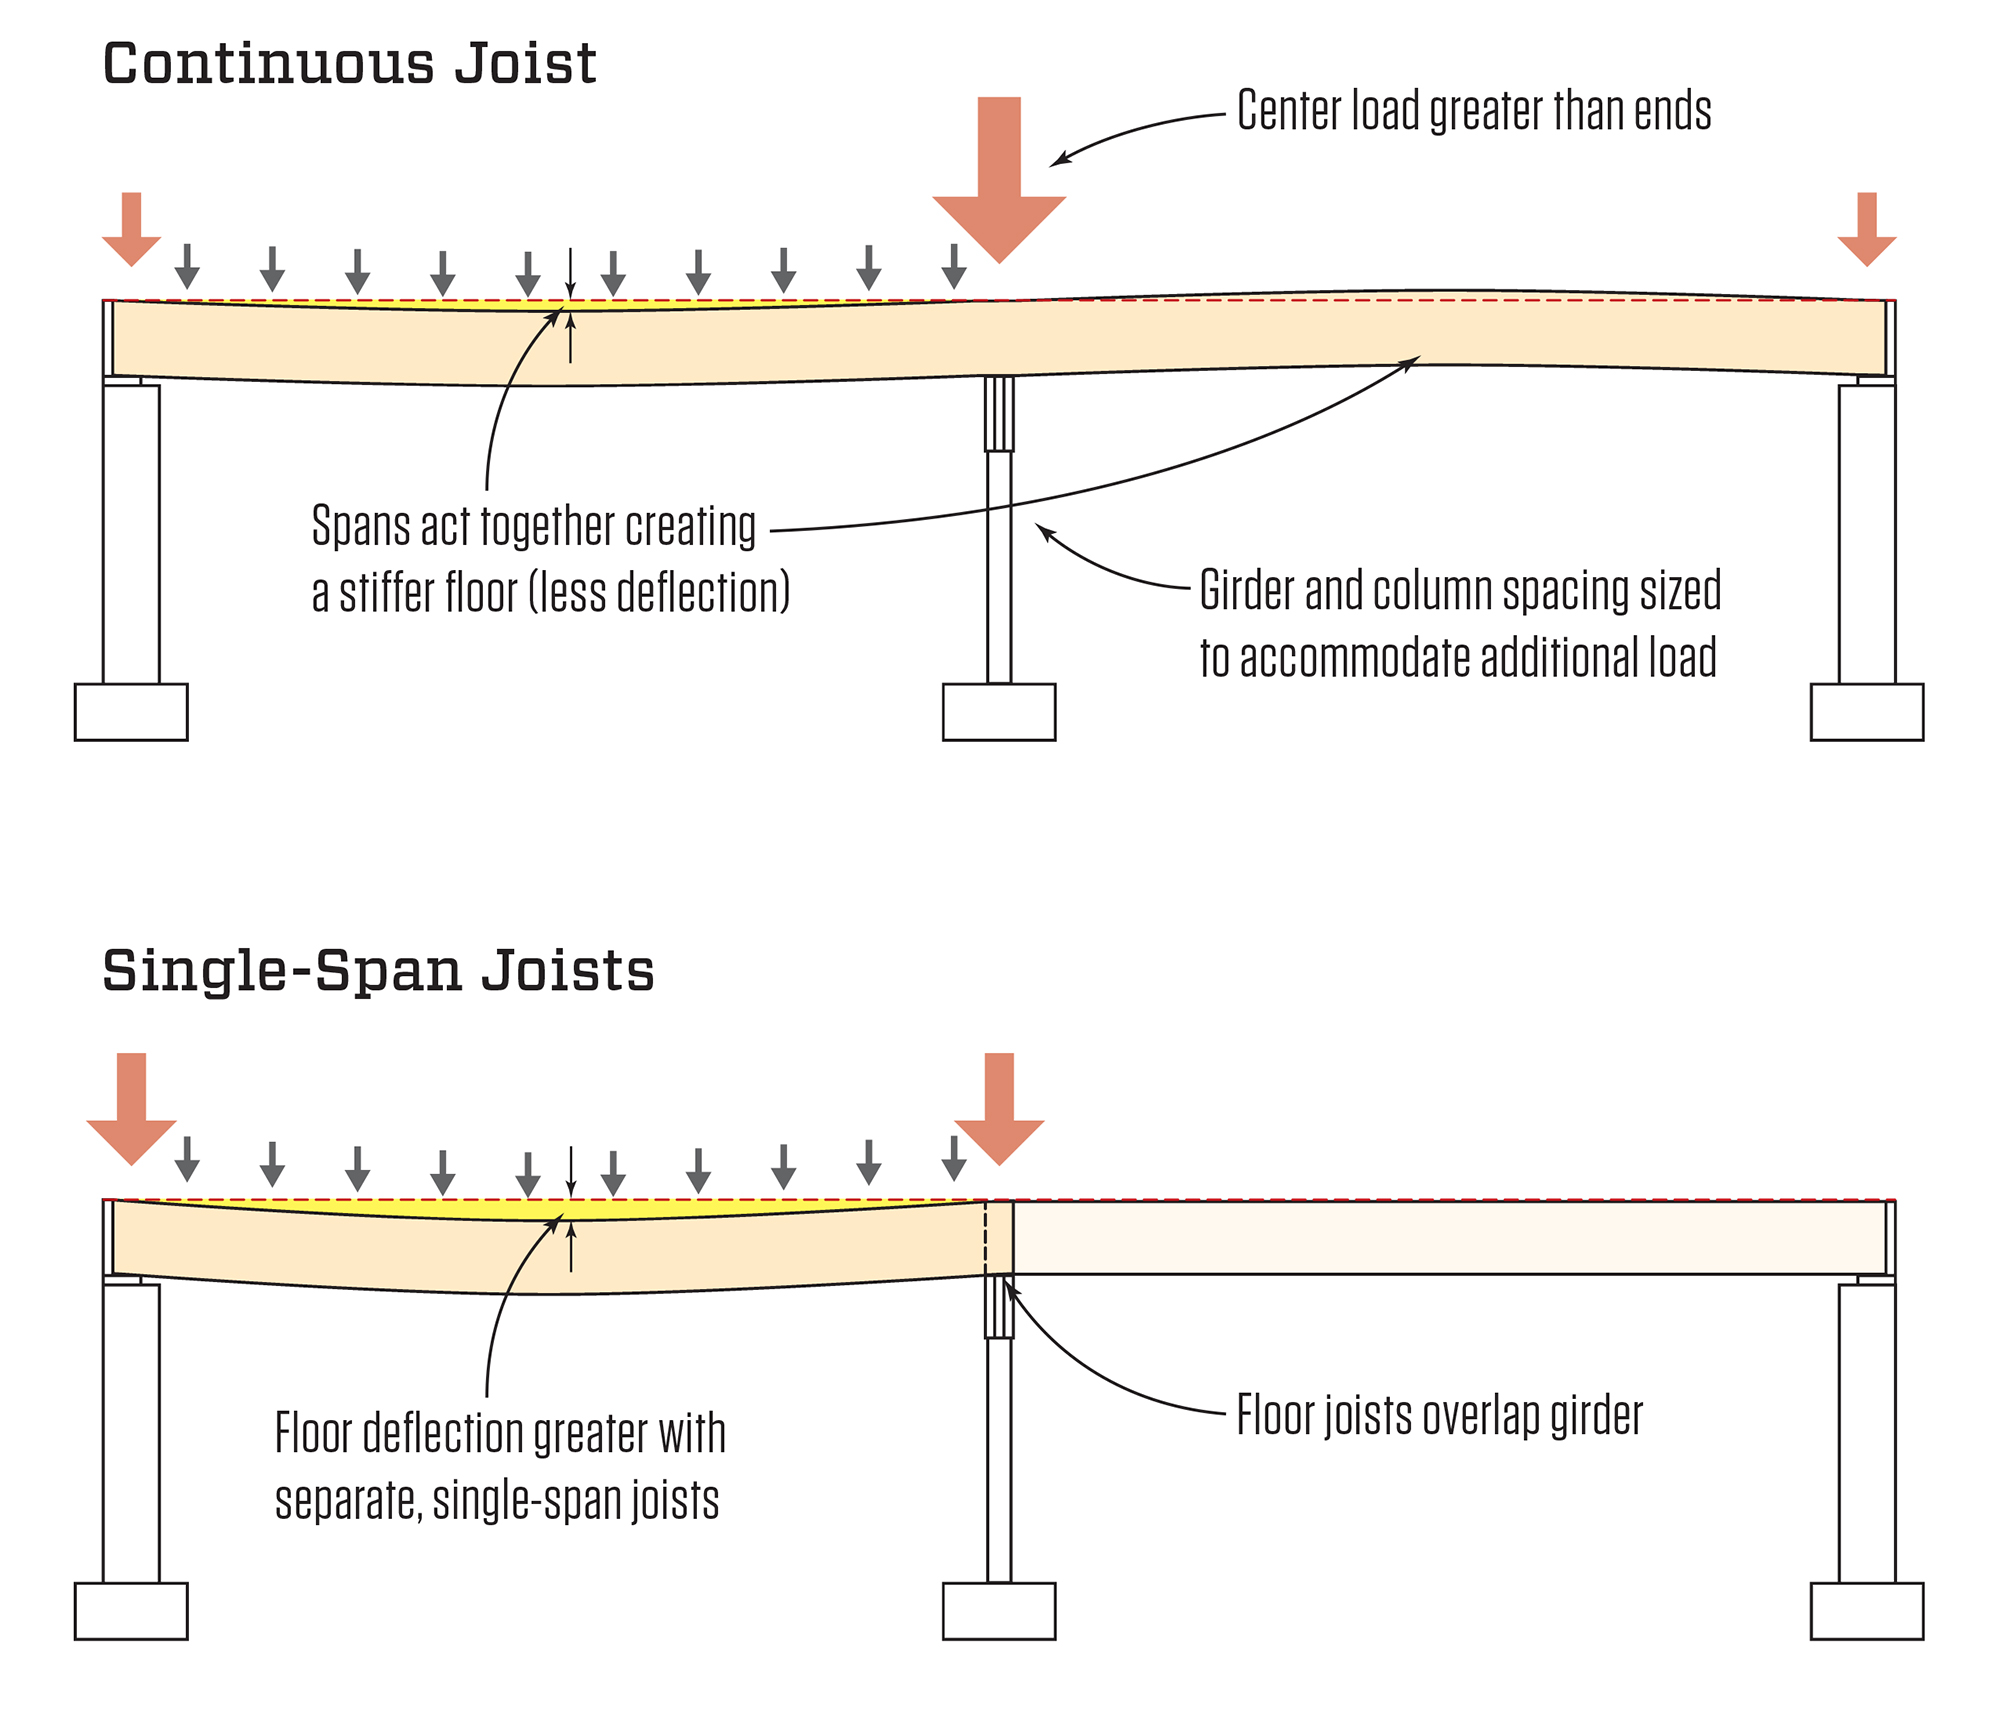 1013 jlc qa 1 rev continuous vs single span joists jlc online framing, lumber